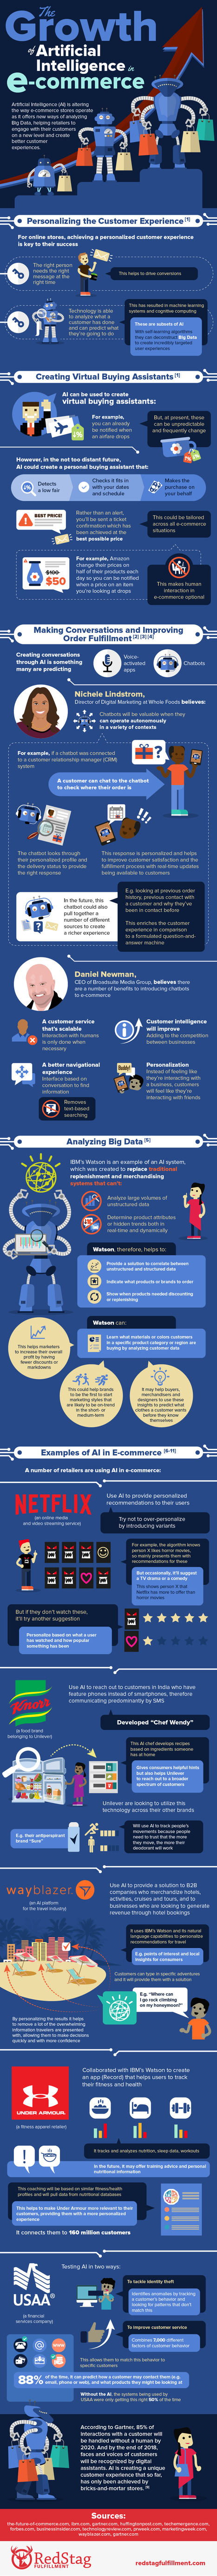 The Growth of Artificial Intelligence in Ecommerce #Infographic | MarketingHits | Scoop.it